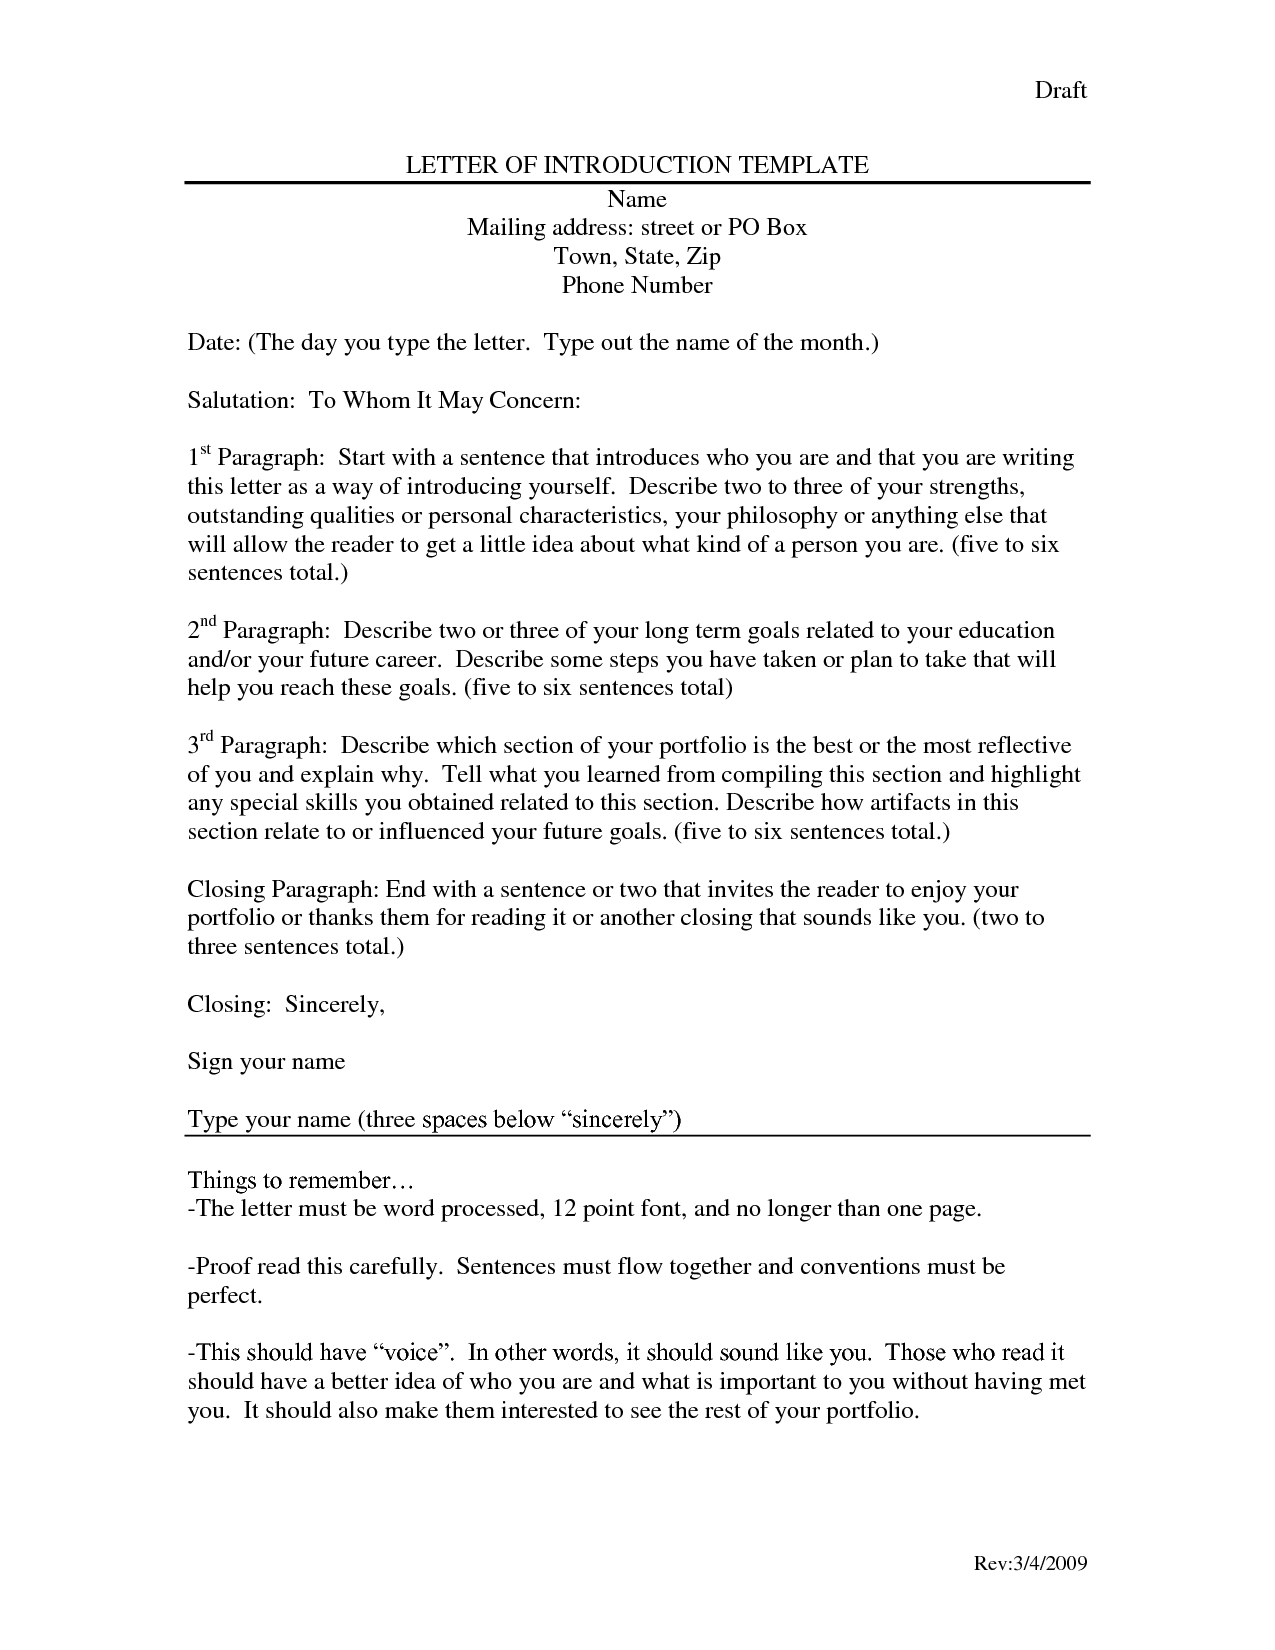 Letter Of Introduction Template yFzCE92I